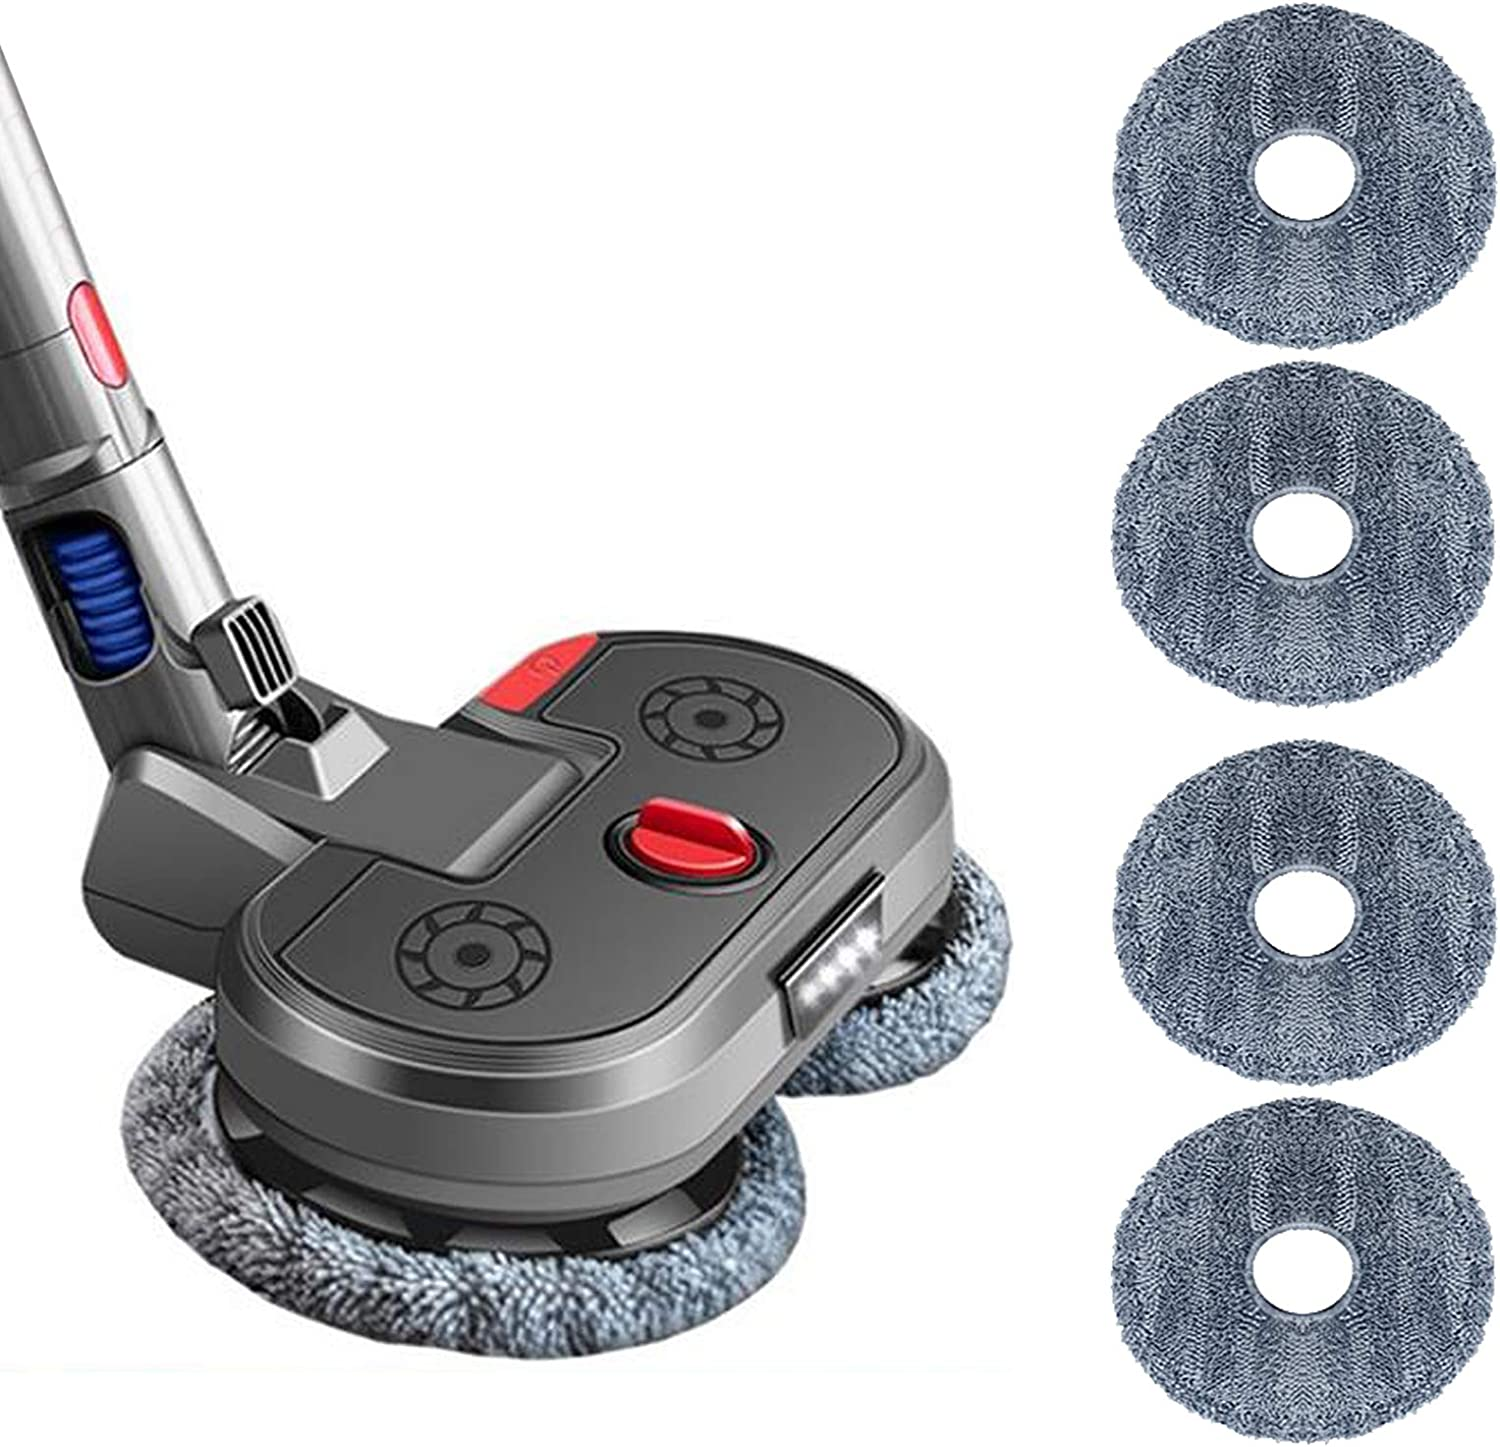 Electric Mop Cleaning Head Replacement sale Stick Dyson online shop Cordless for